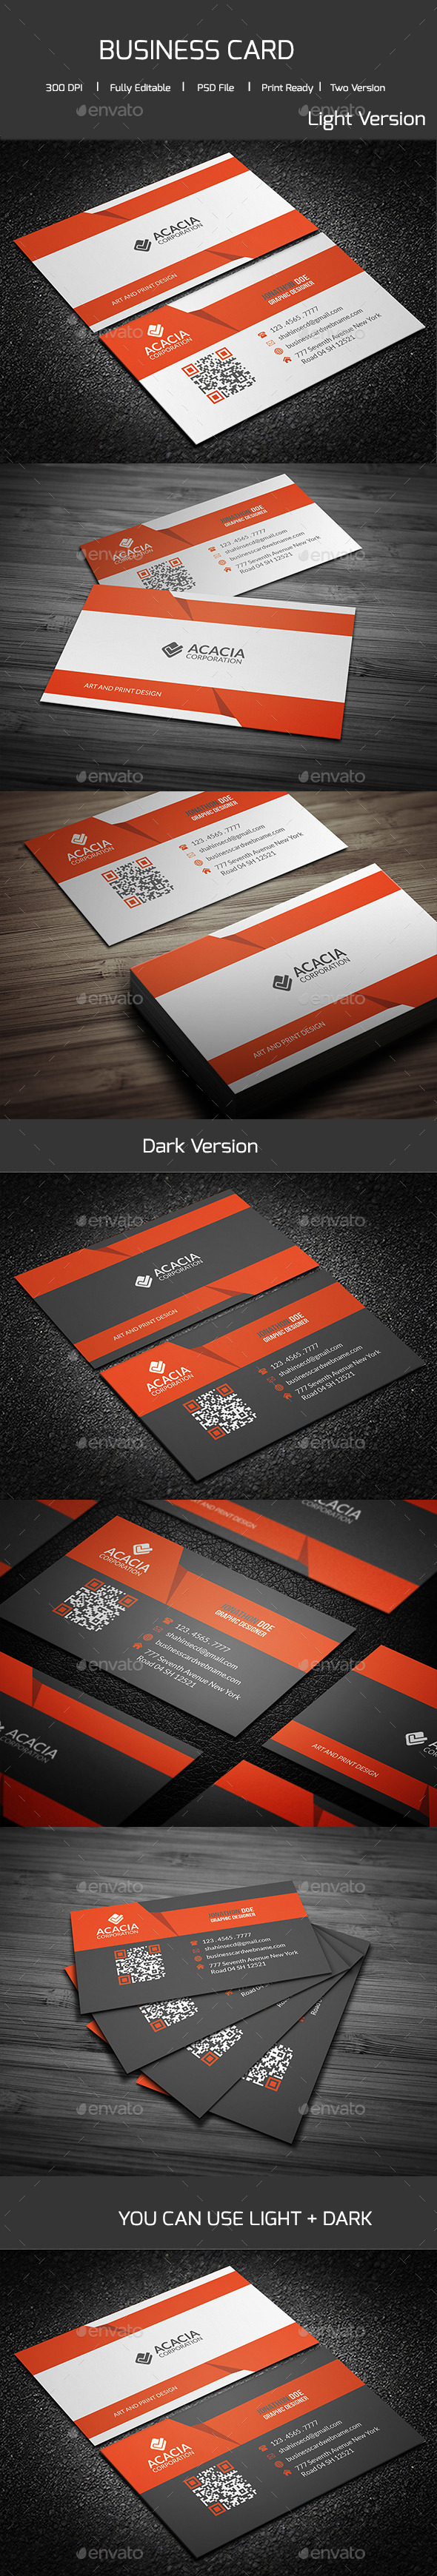 GraphicRiver RAHEE Business Card 11448156